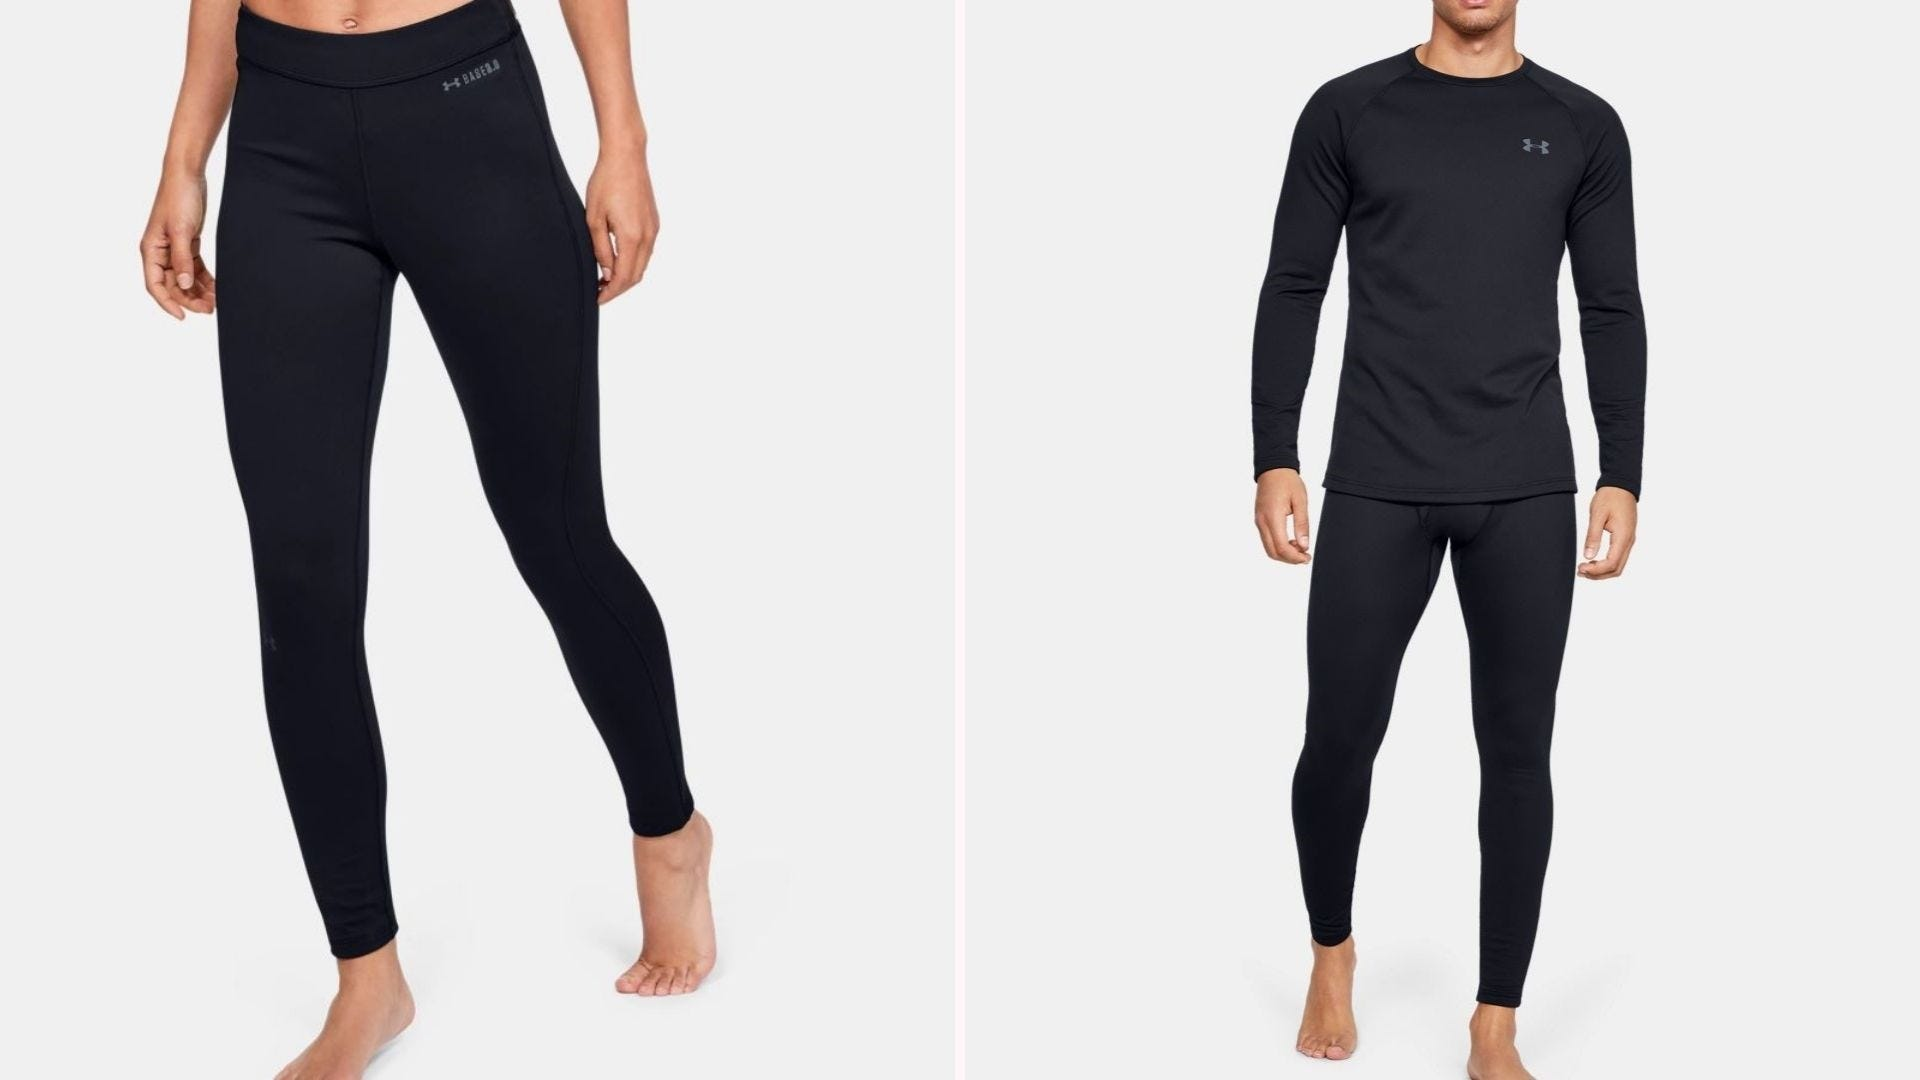 A woman and man wearing black Under Armour Compressed leggings